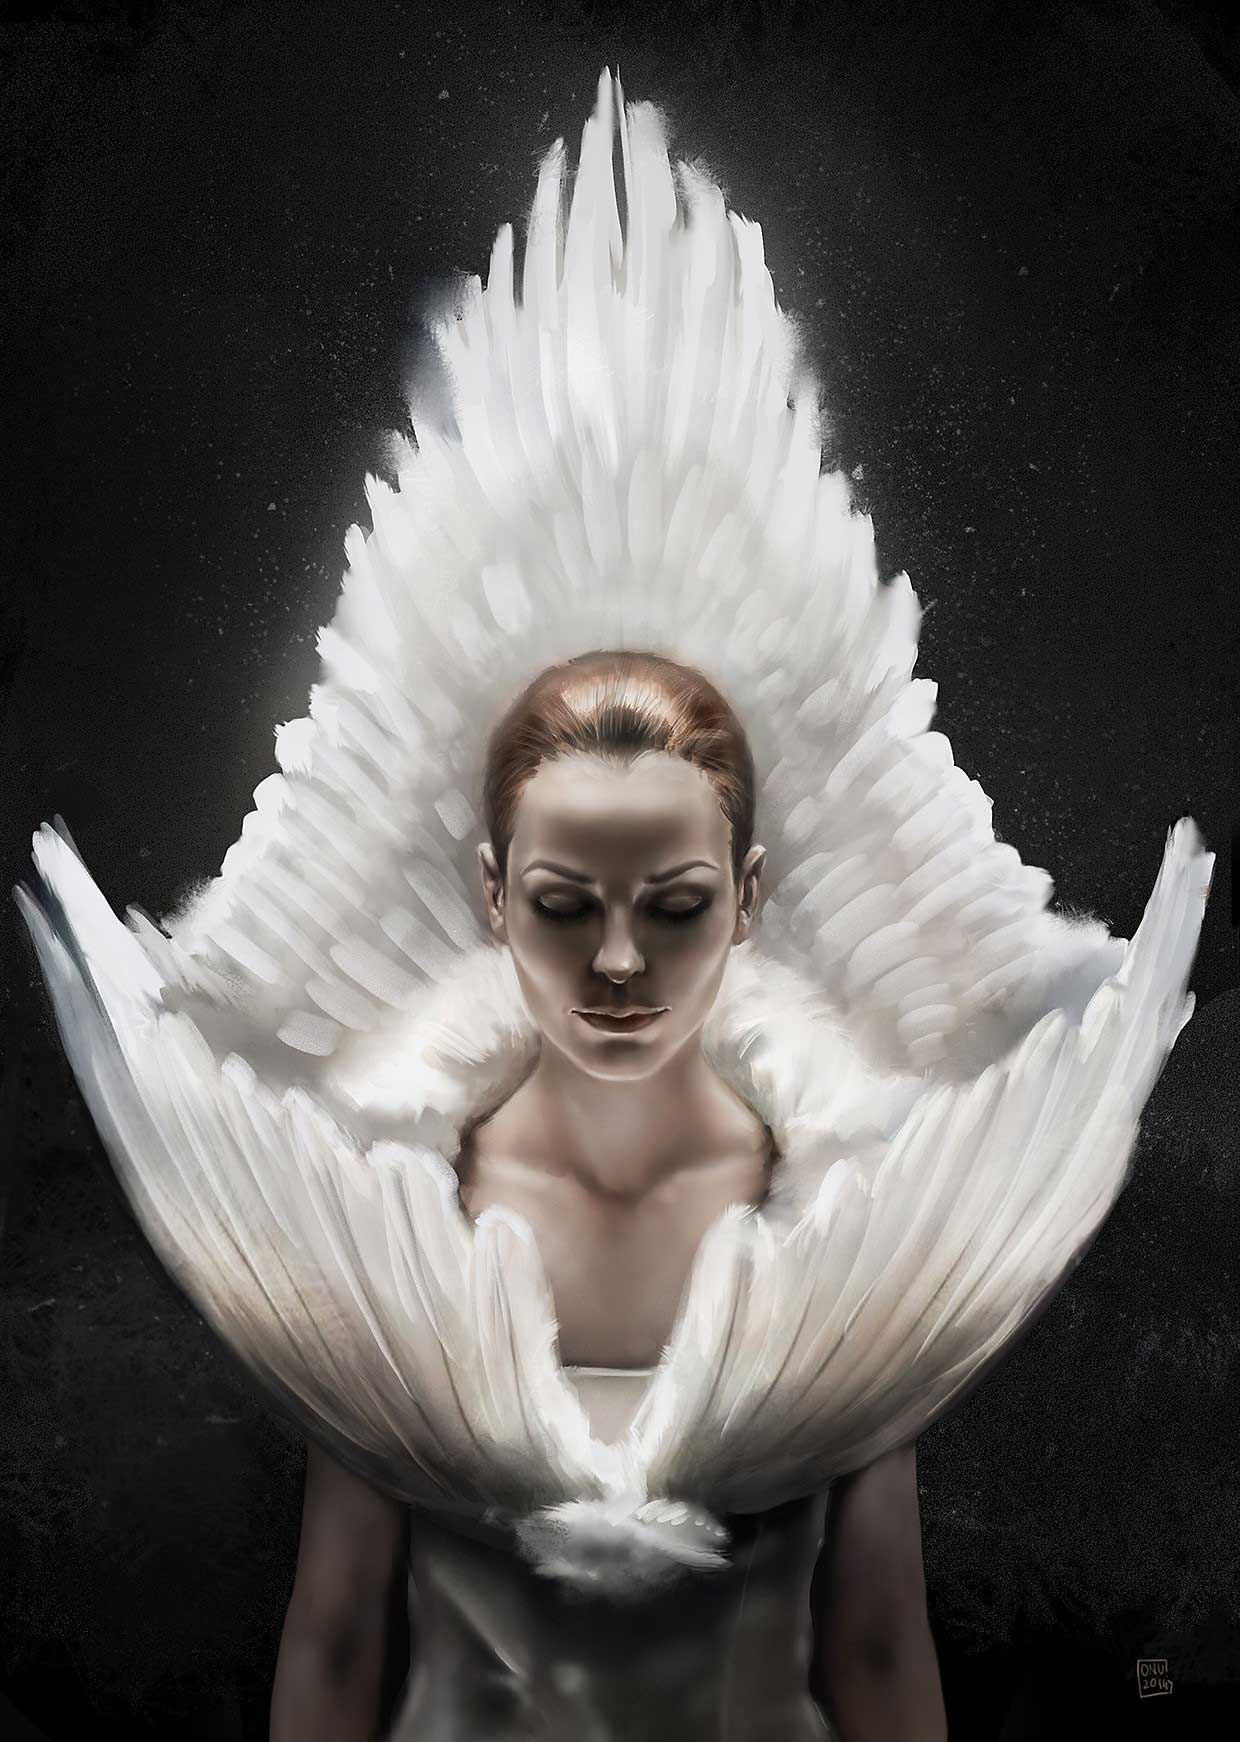 Digital portrait of actress in costume with feathers and dramatic lighting